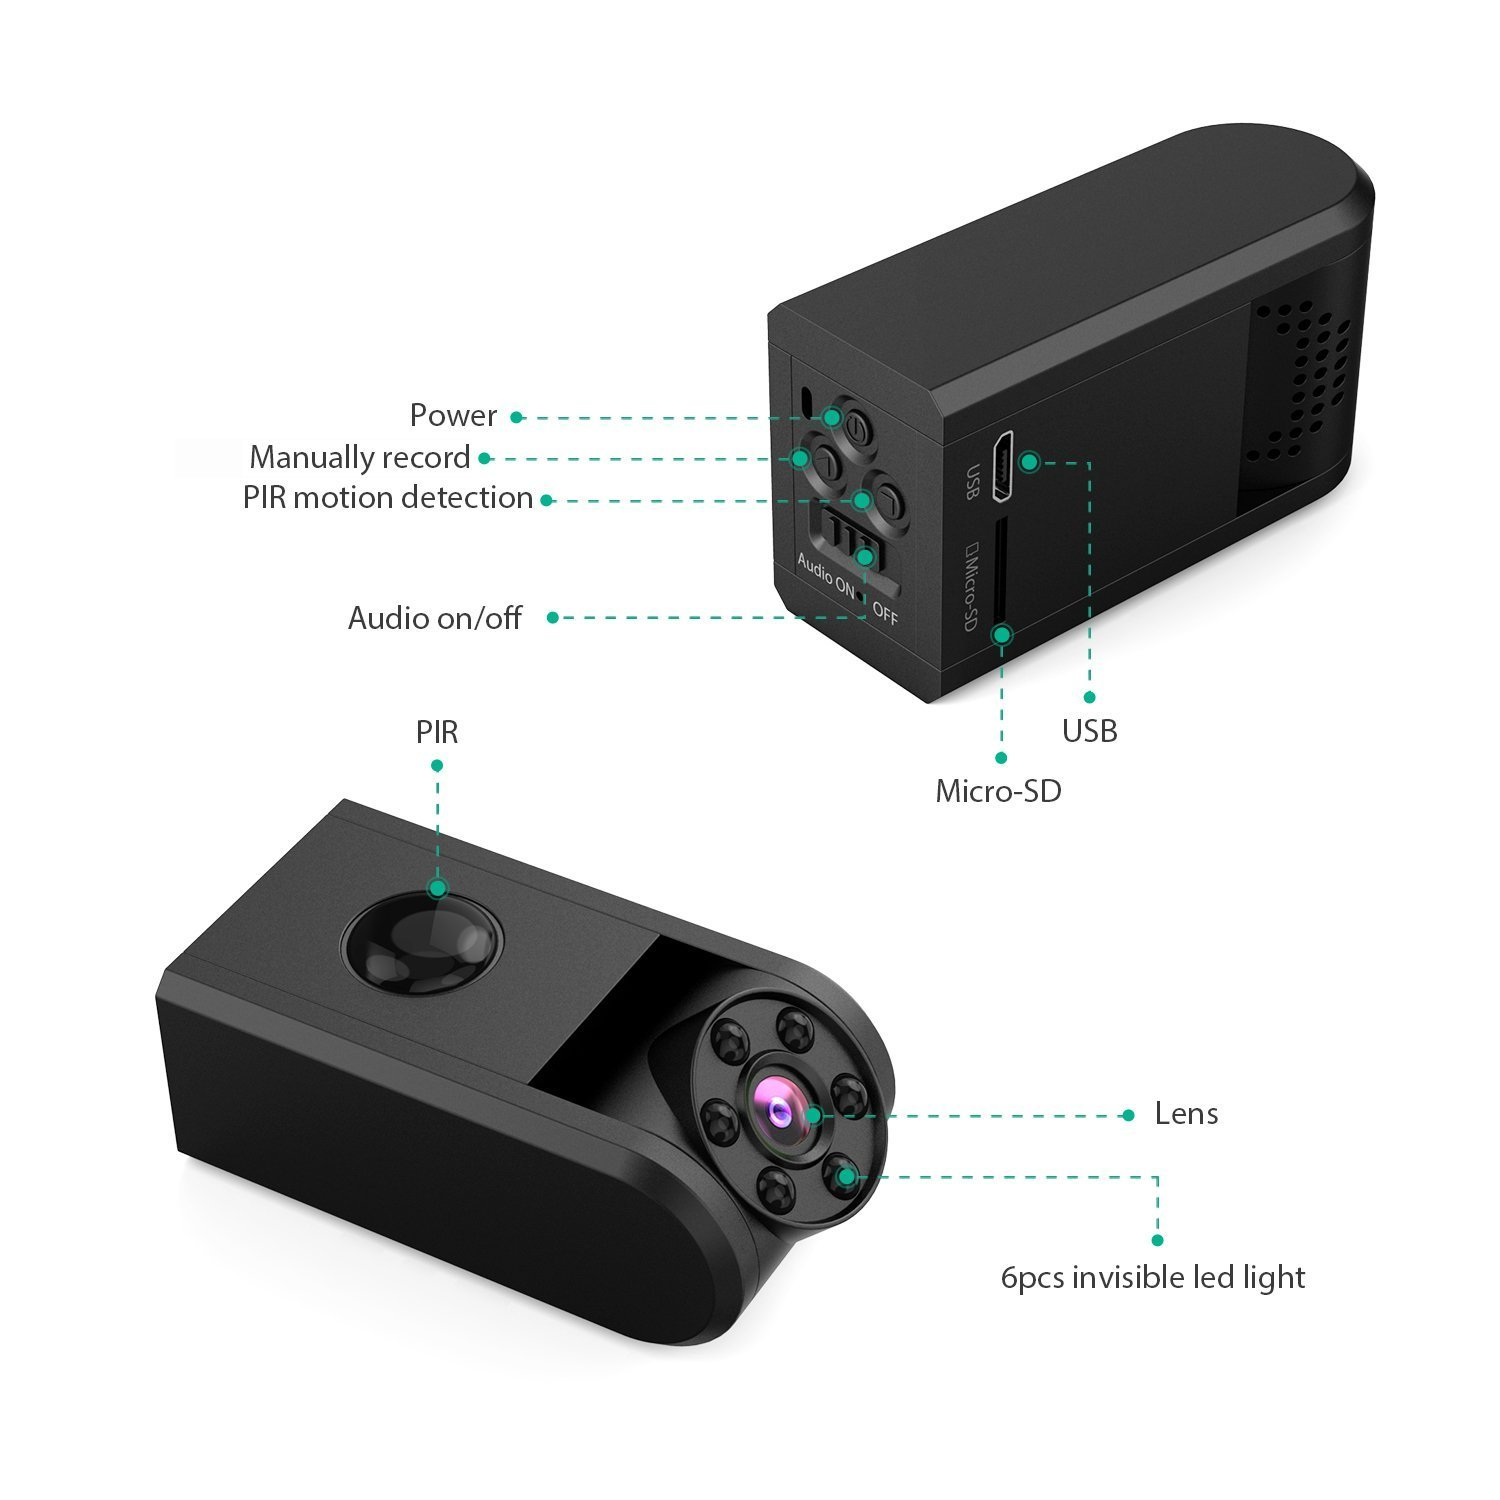 Mini Spy Hidden Camera Conbrov 720p Night Vision Motion Power Bank Newtech 12000mah Original Jabodetabek Only Activated Detection Portable Covert Nanny Cam Video Recorder Camcorder With Built In